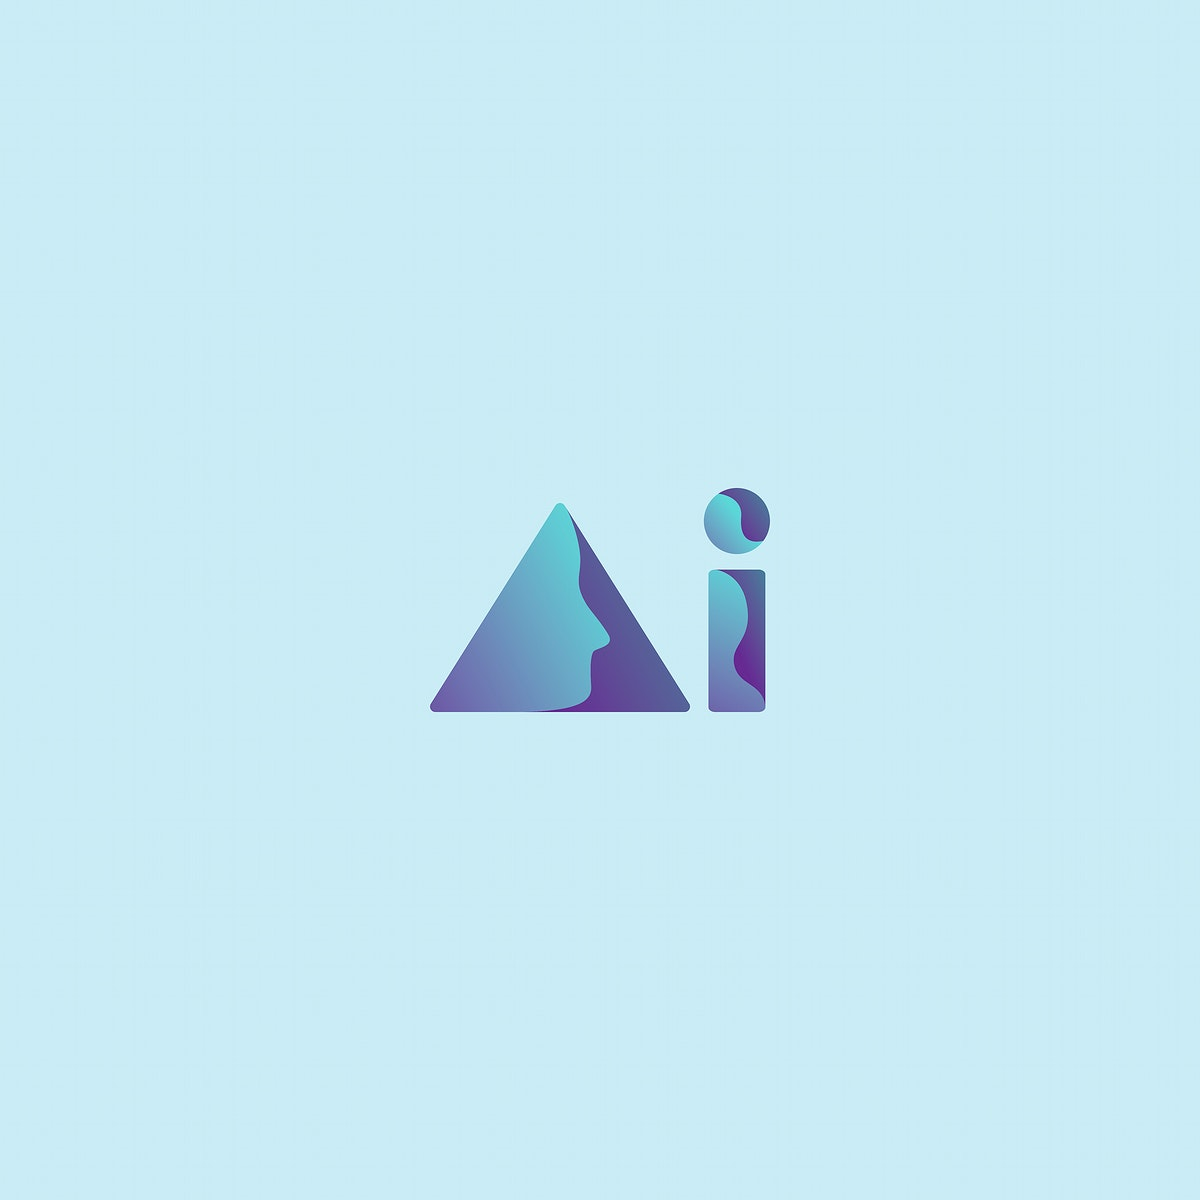 Artificial intelligence icon typography illustration